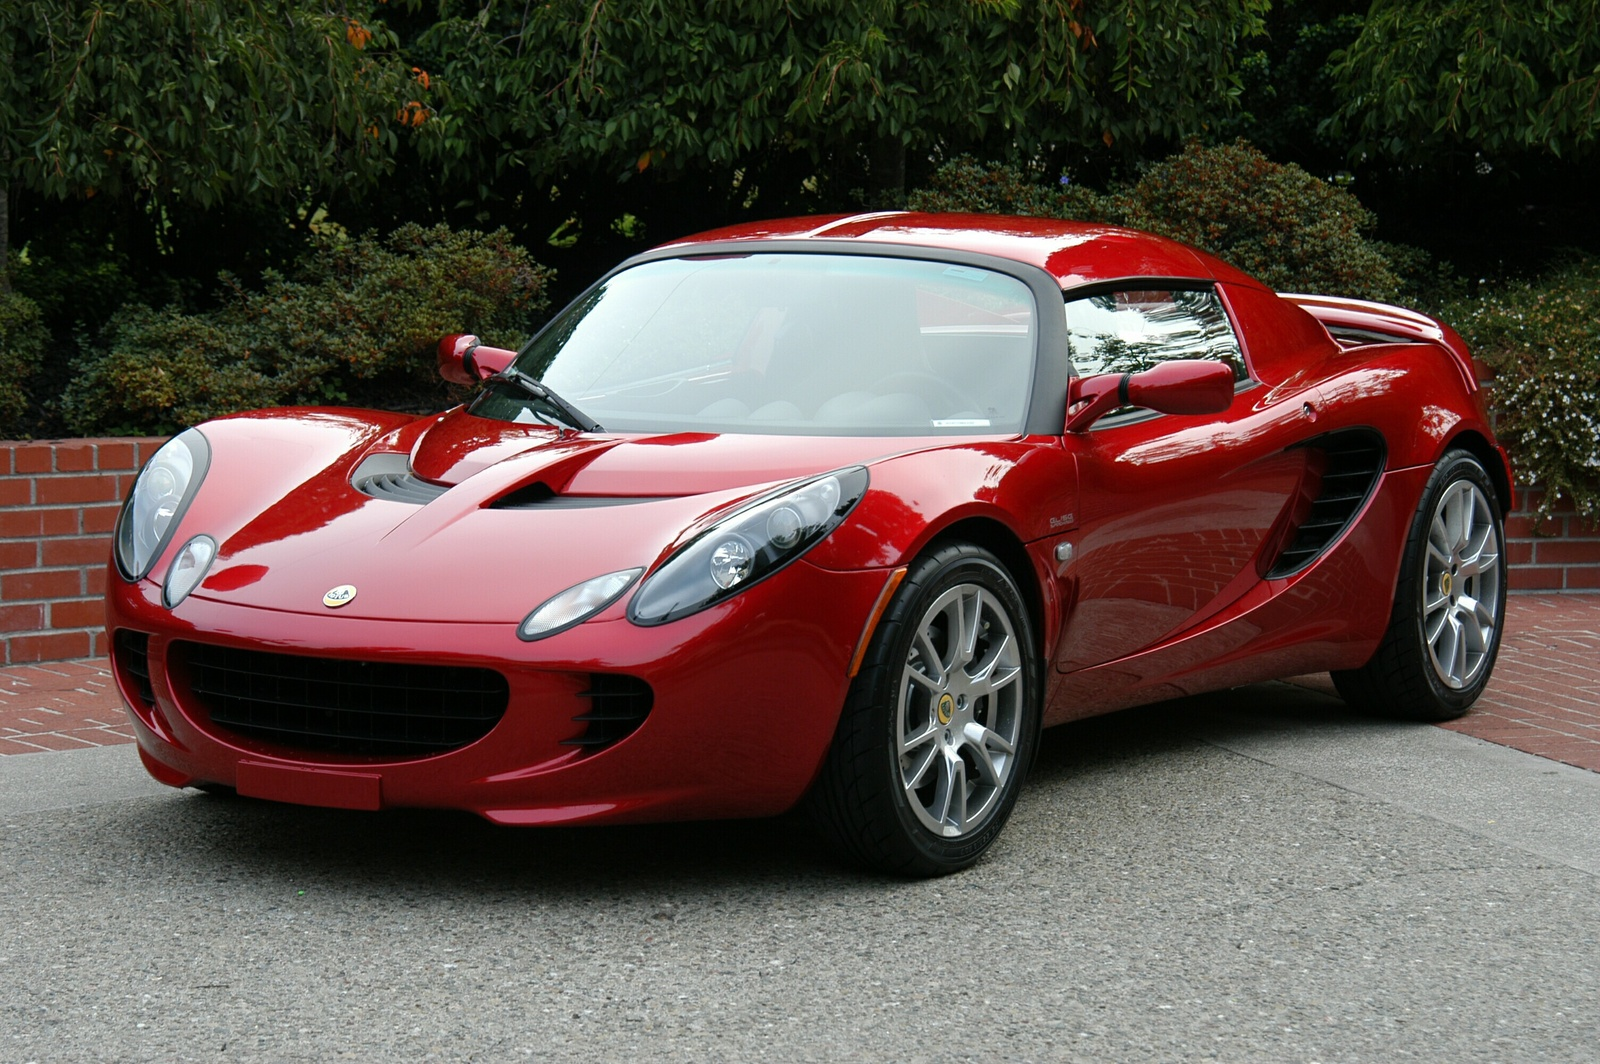 2008 lotus elise pictures cargurus. Black Bedroom Furniture Sets. Home Design Ideas